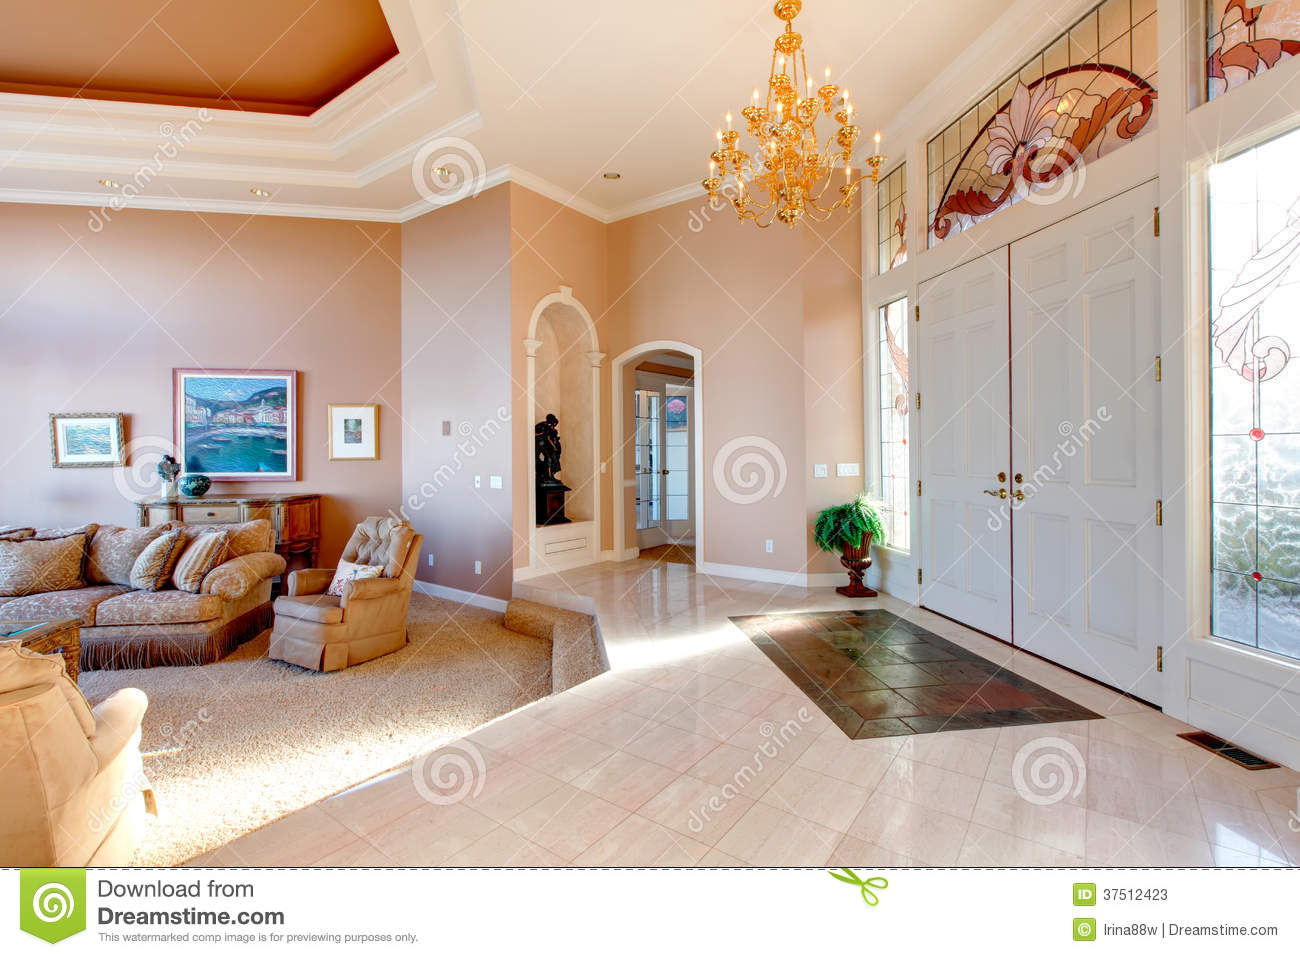 Open Plan Of Luxury Bright Hallway Stock Image - Image of building ...